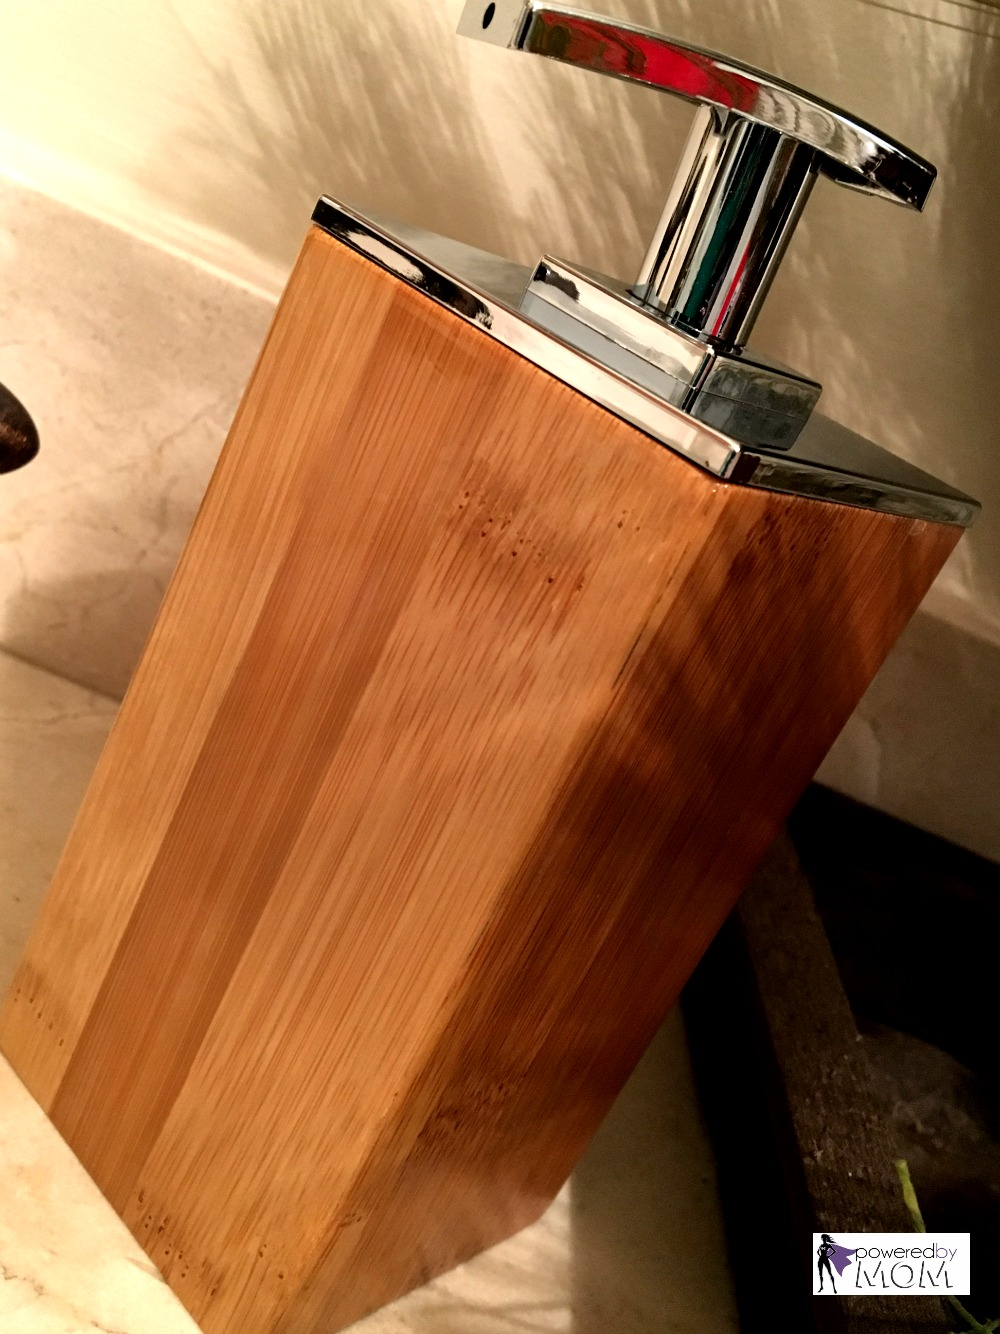 bamboo-soap-dispenser